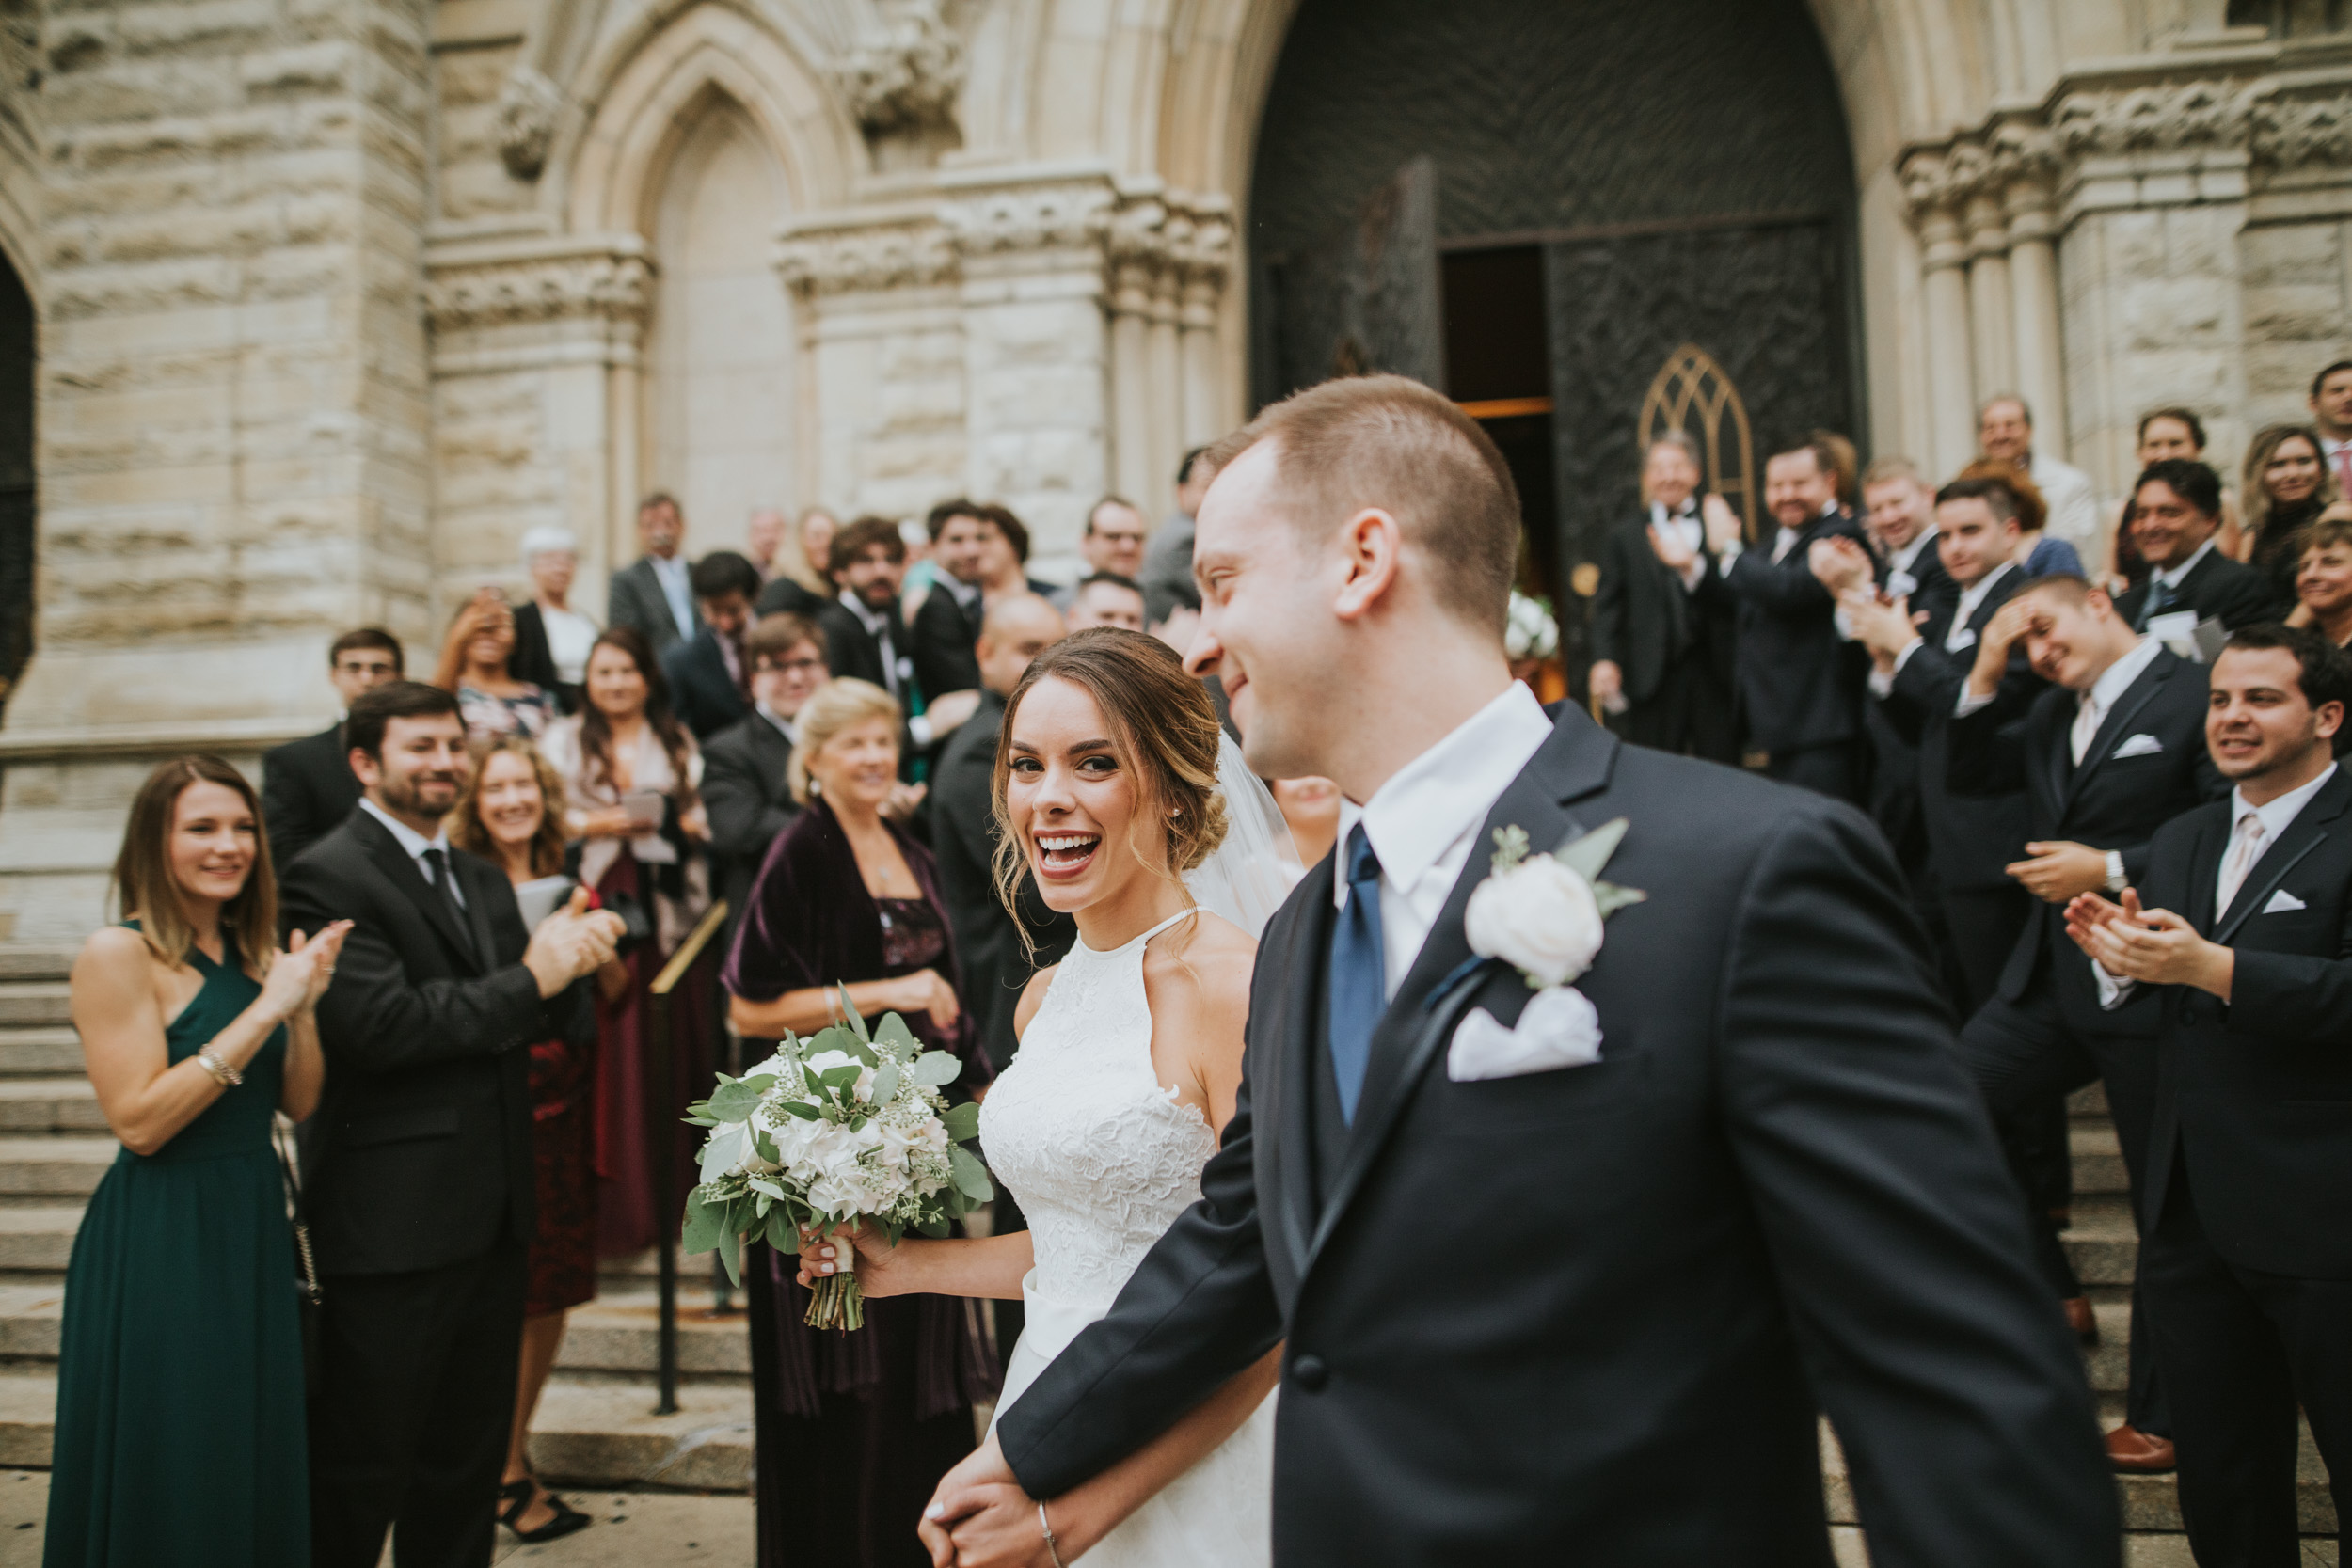 Downtown Chicago Wedding_Polly C Photography 1706163533.jpg